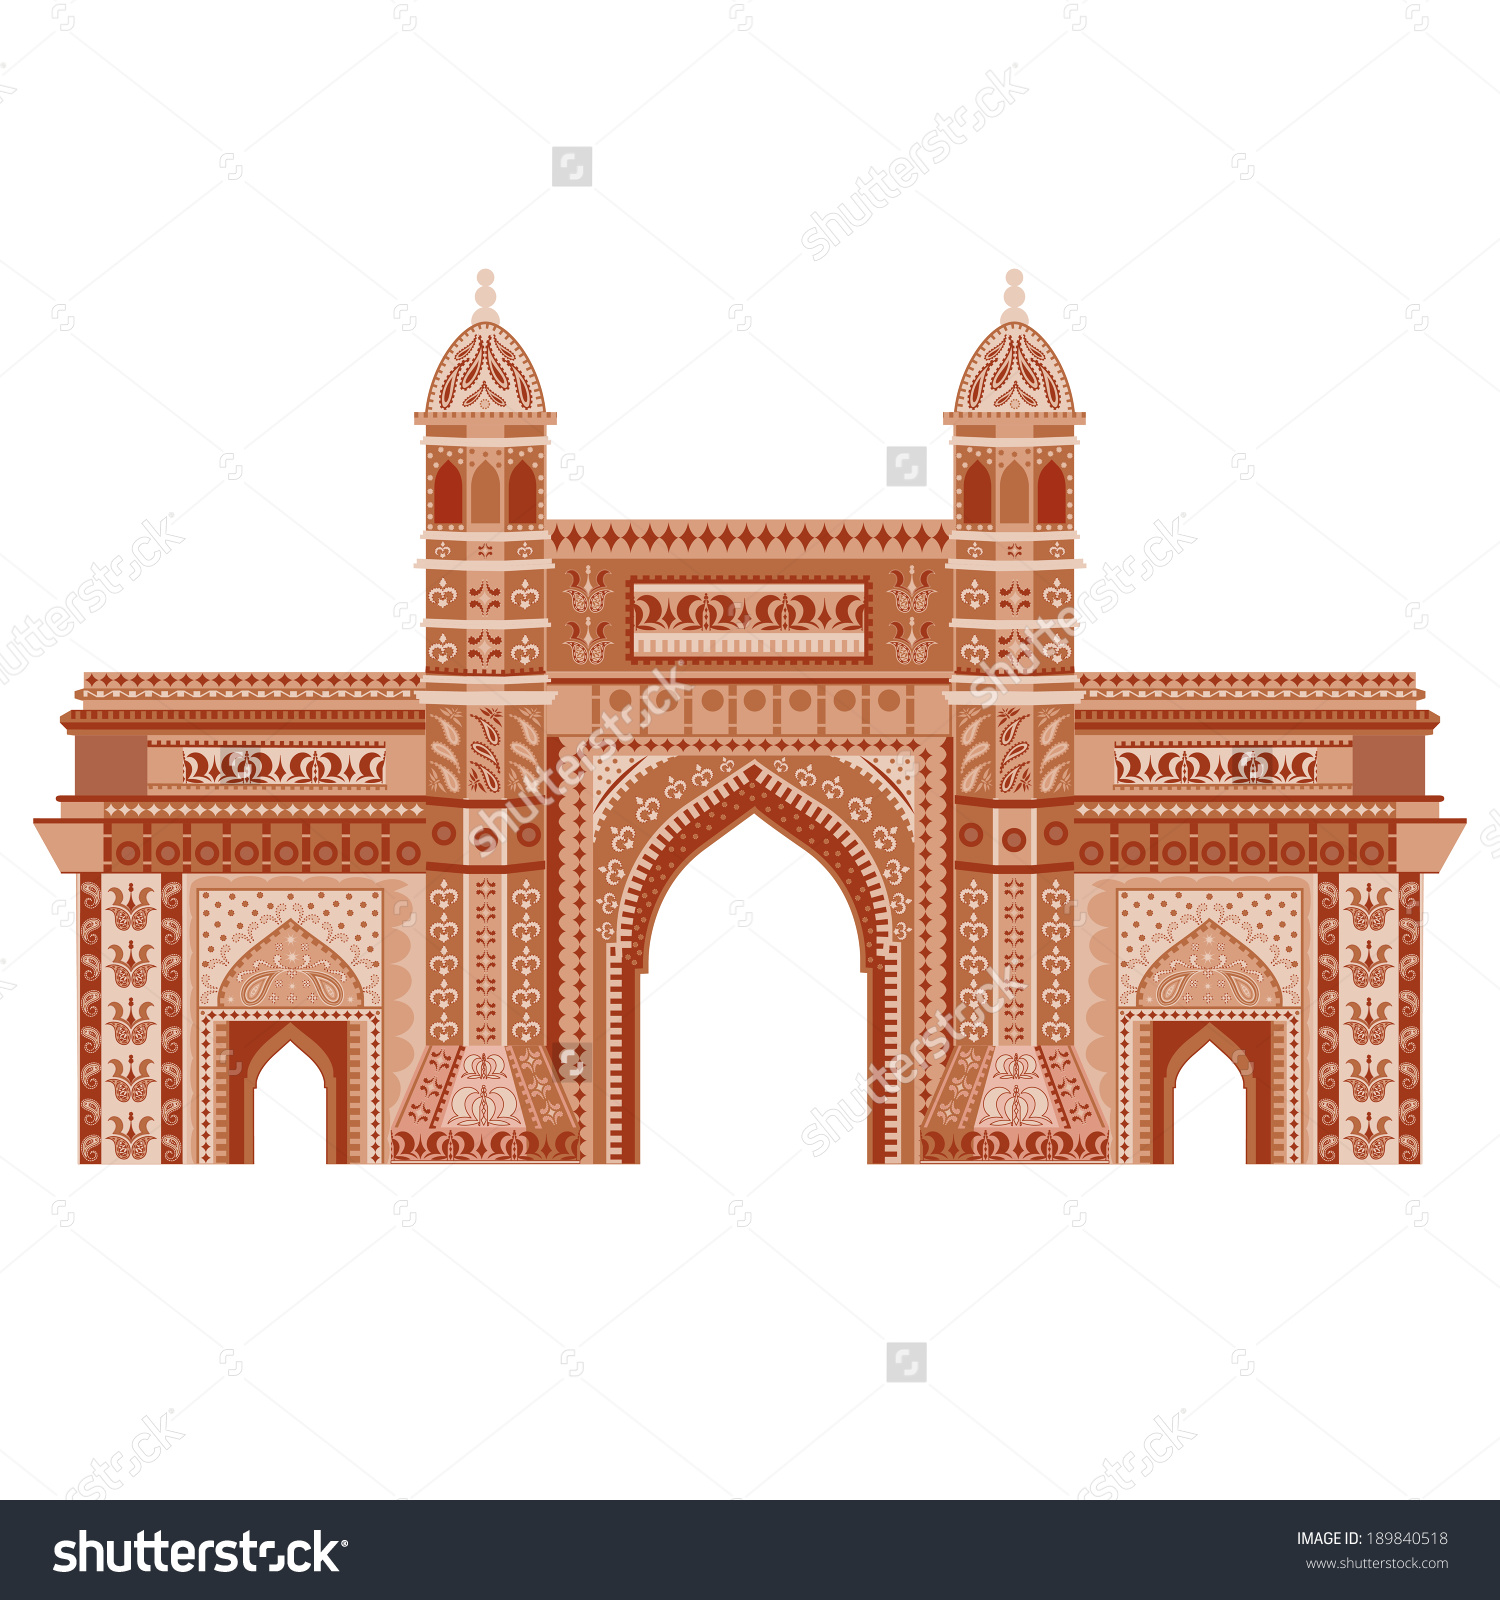 Gateway Of India Clipart.